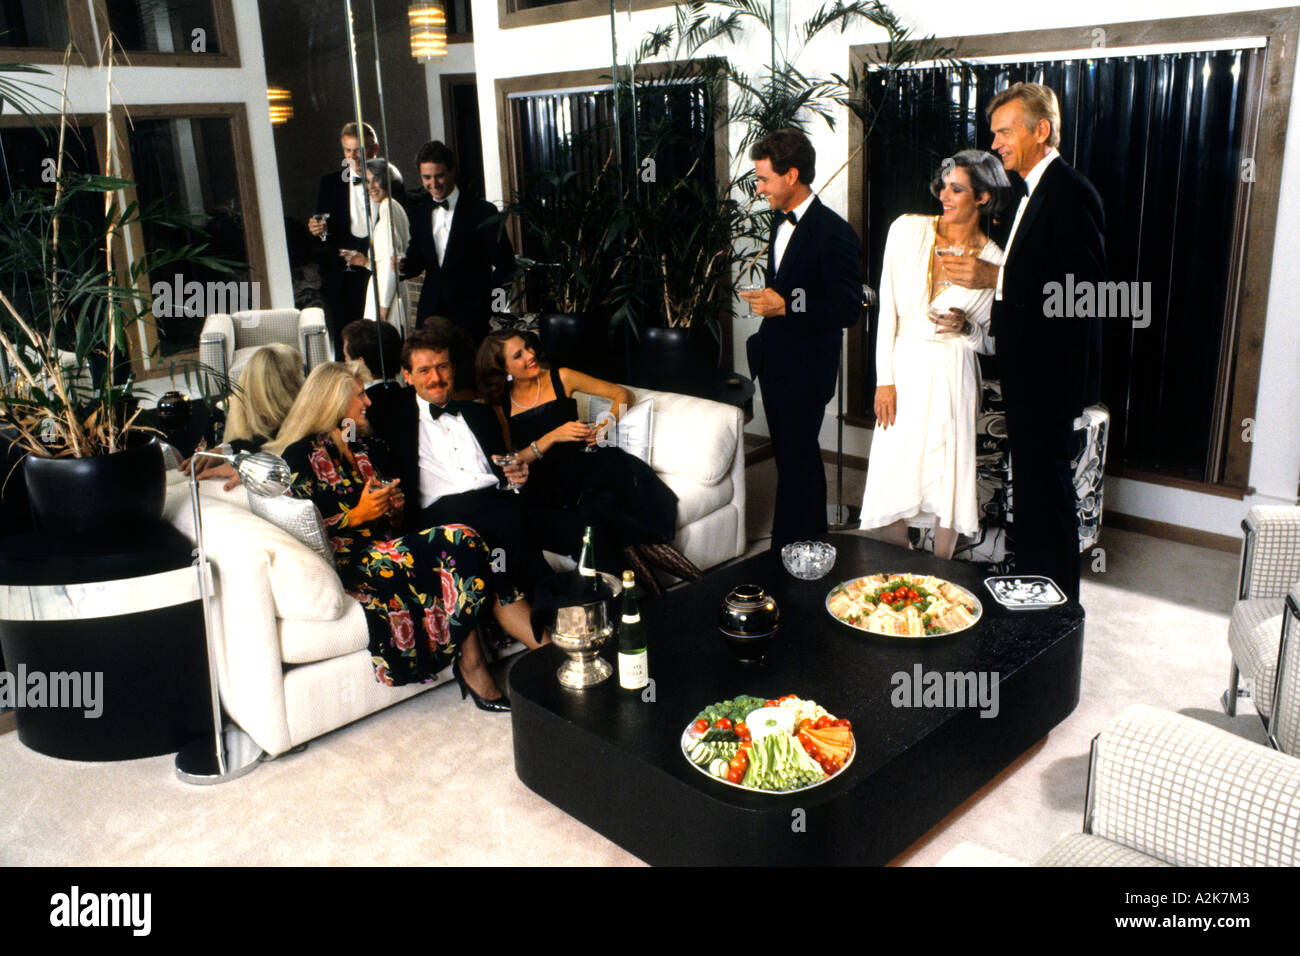 Elegantly dressed couples at dinner party social enjoying talking and having drinks in the good life - Stock Image